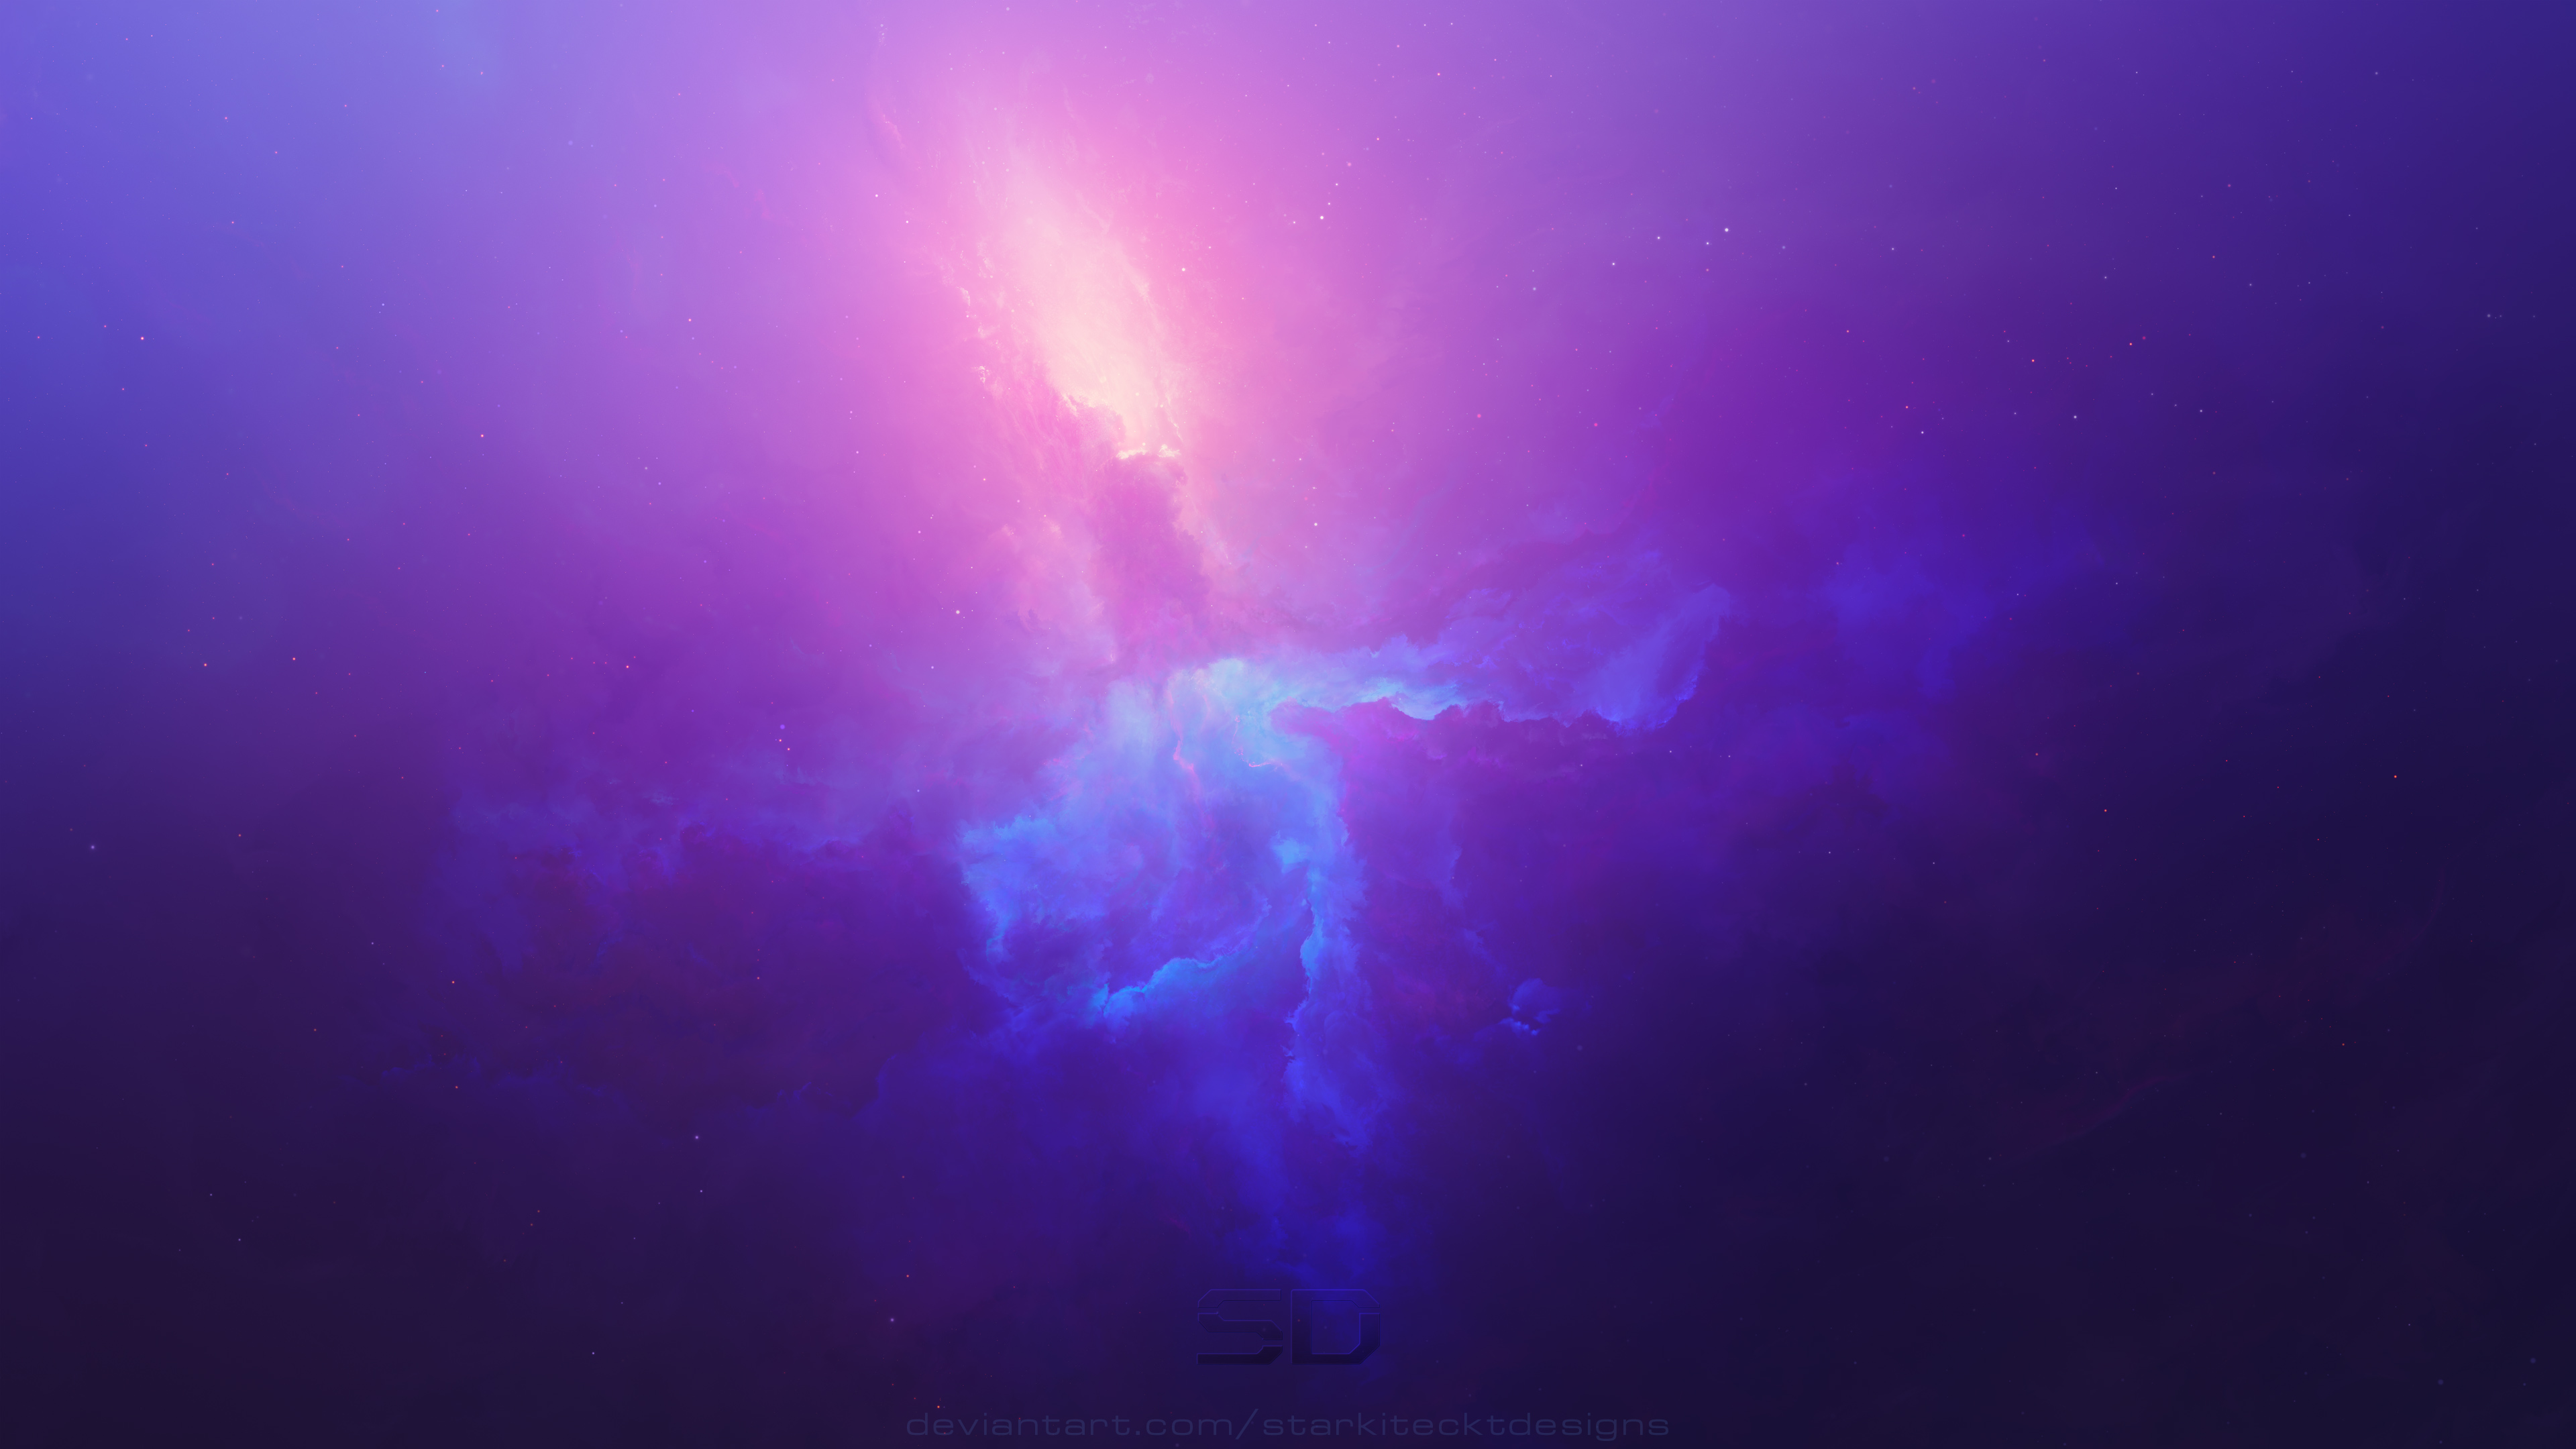 purple space cosmos abstract 1574942794 - Purple Space Cosmos Abstract -